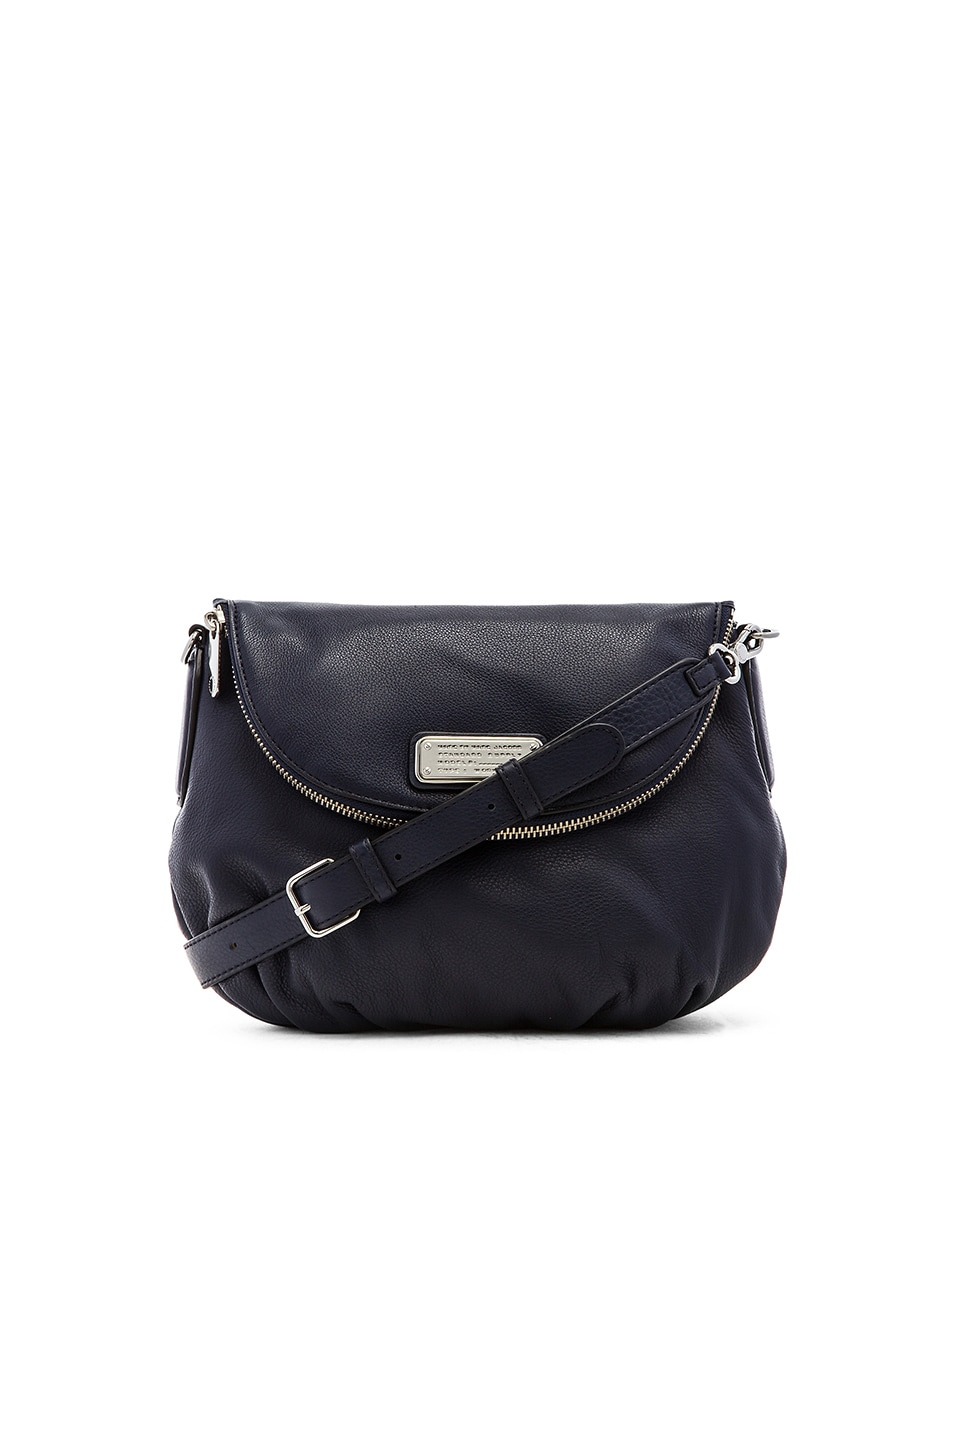 Marc by Marc Jacobs New Q Natasha Crossbody in India Ink